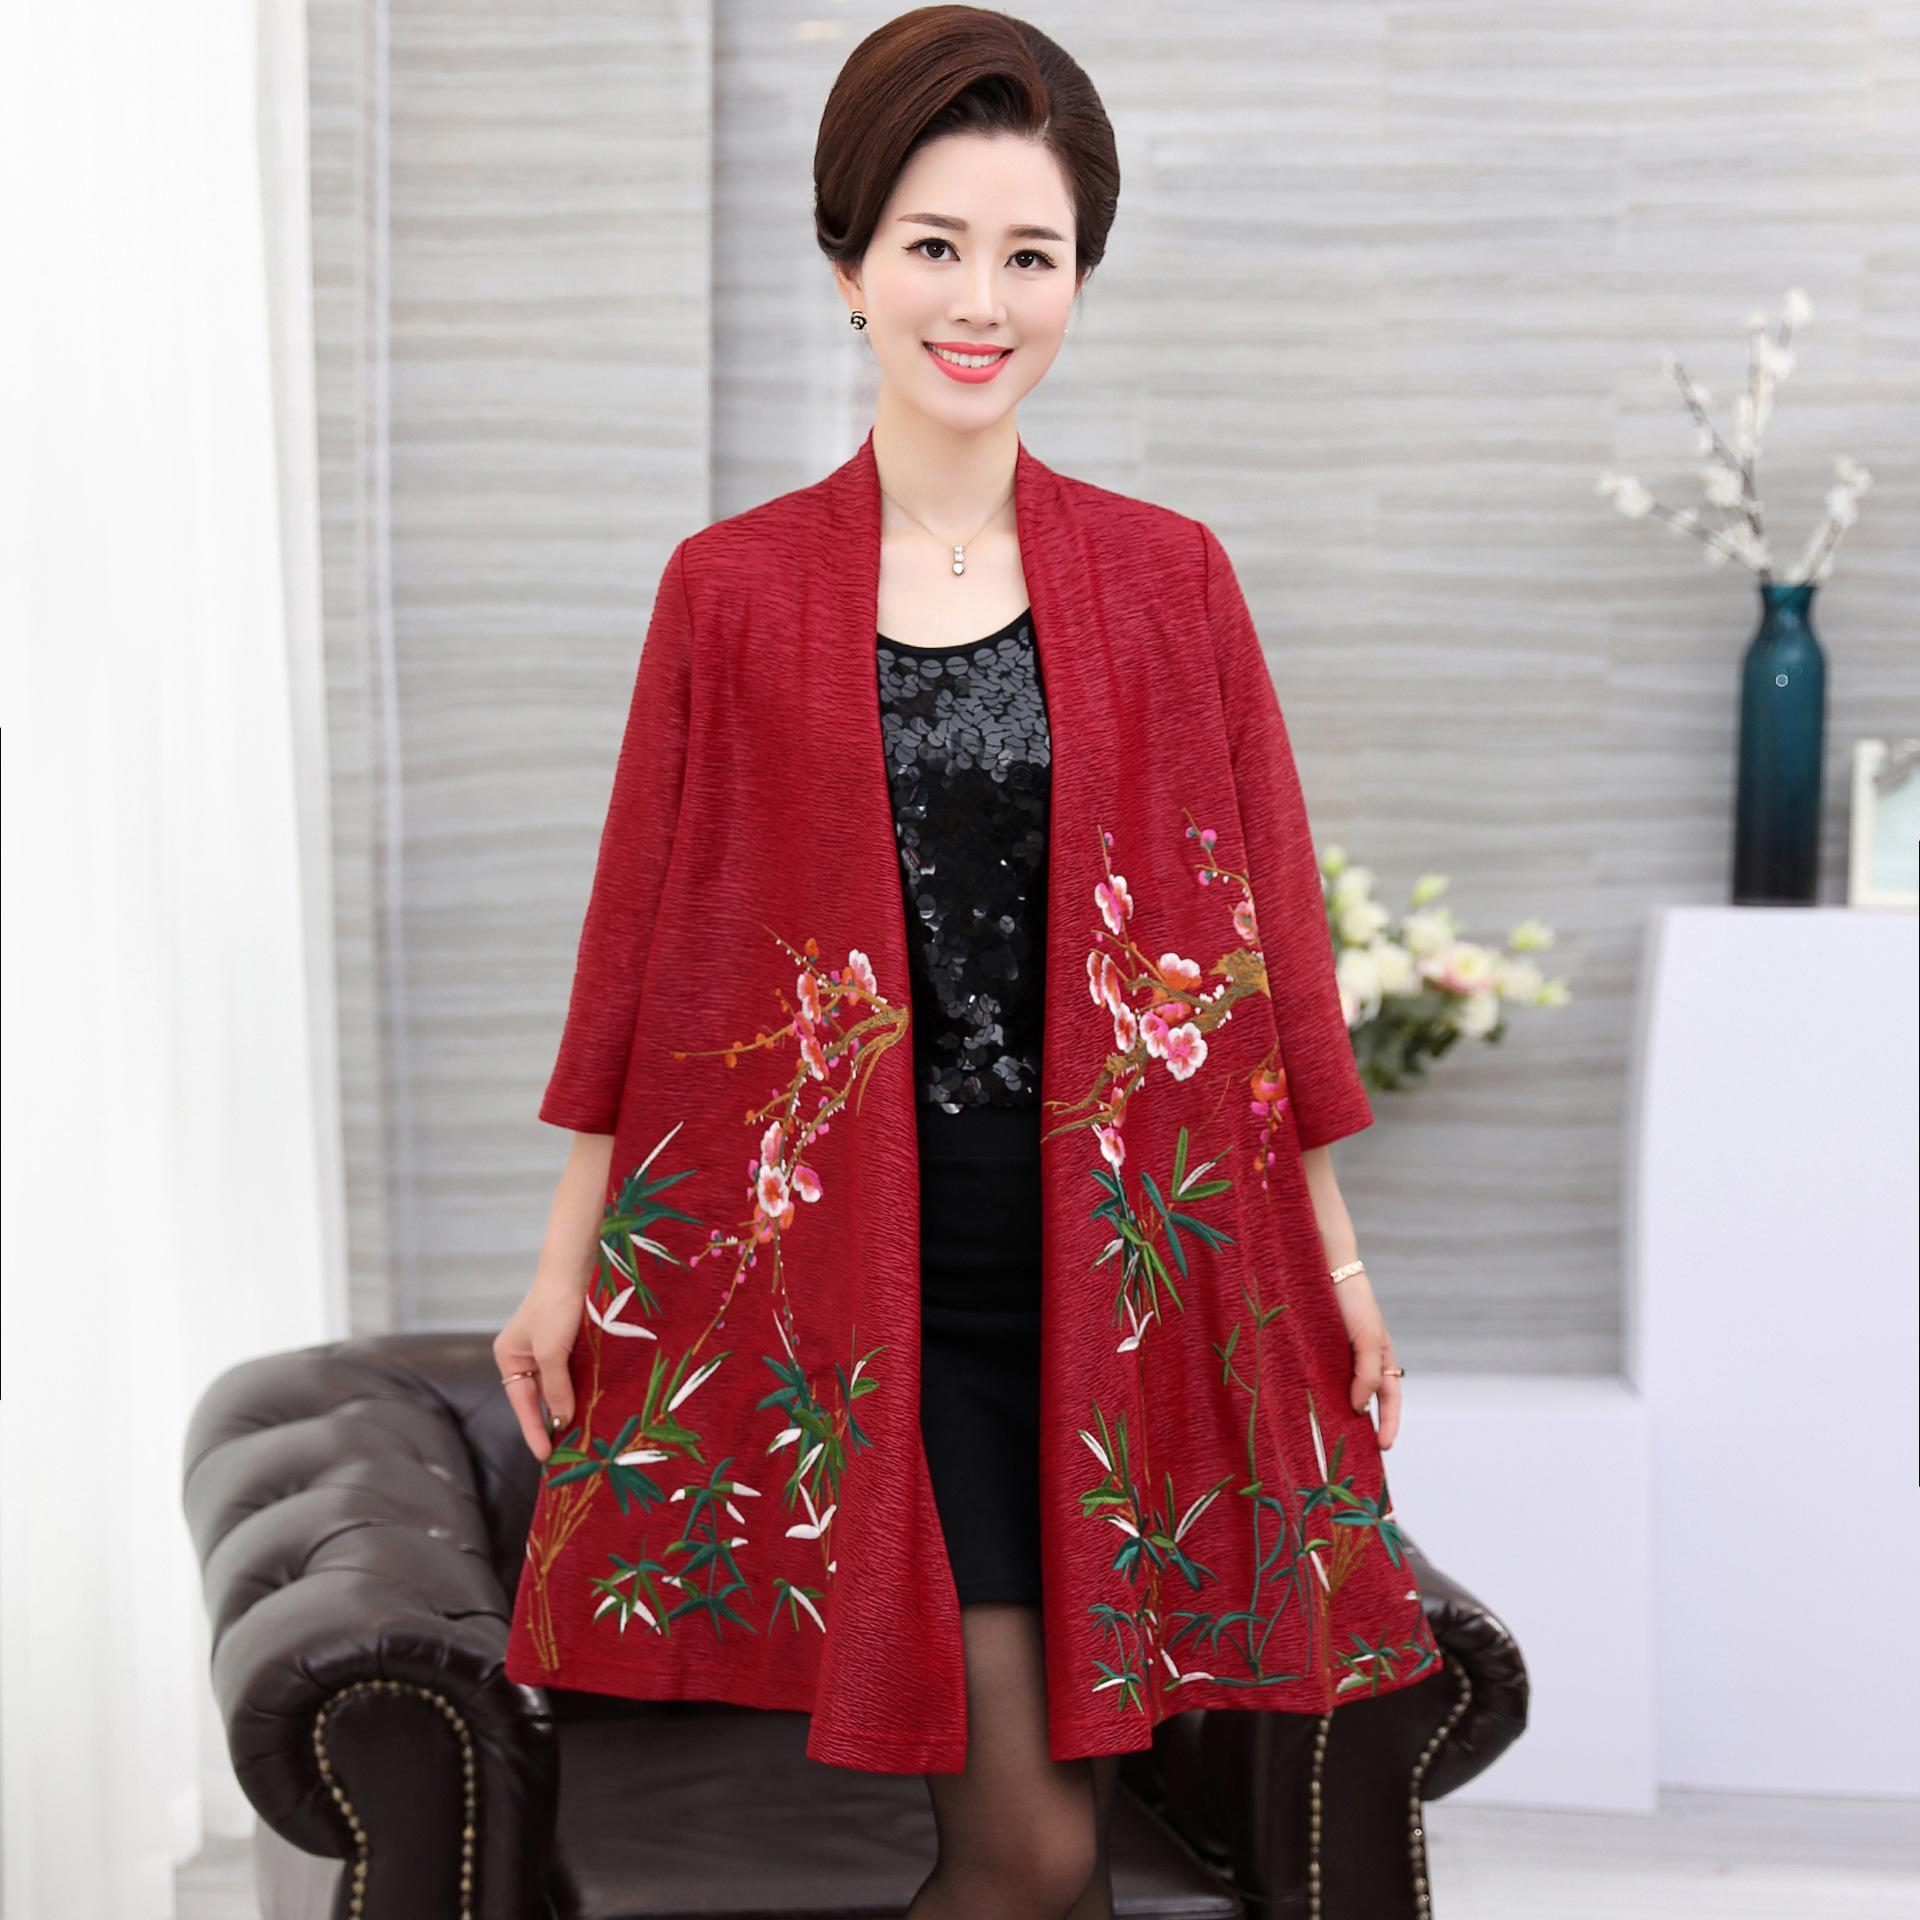 ad8d99e06ad NIFULLAN Fashion Women s Embroidery Jacket Coat Loose Plus Size Mother  Clothing Oversize Shawl Cape Outerwear Cardigan Casual Jacket Lightweight  Jacket From ...